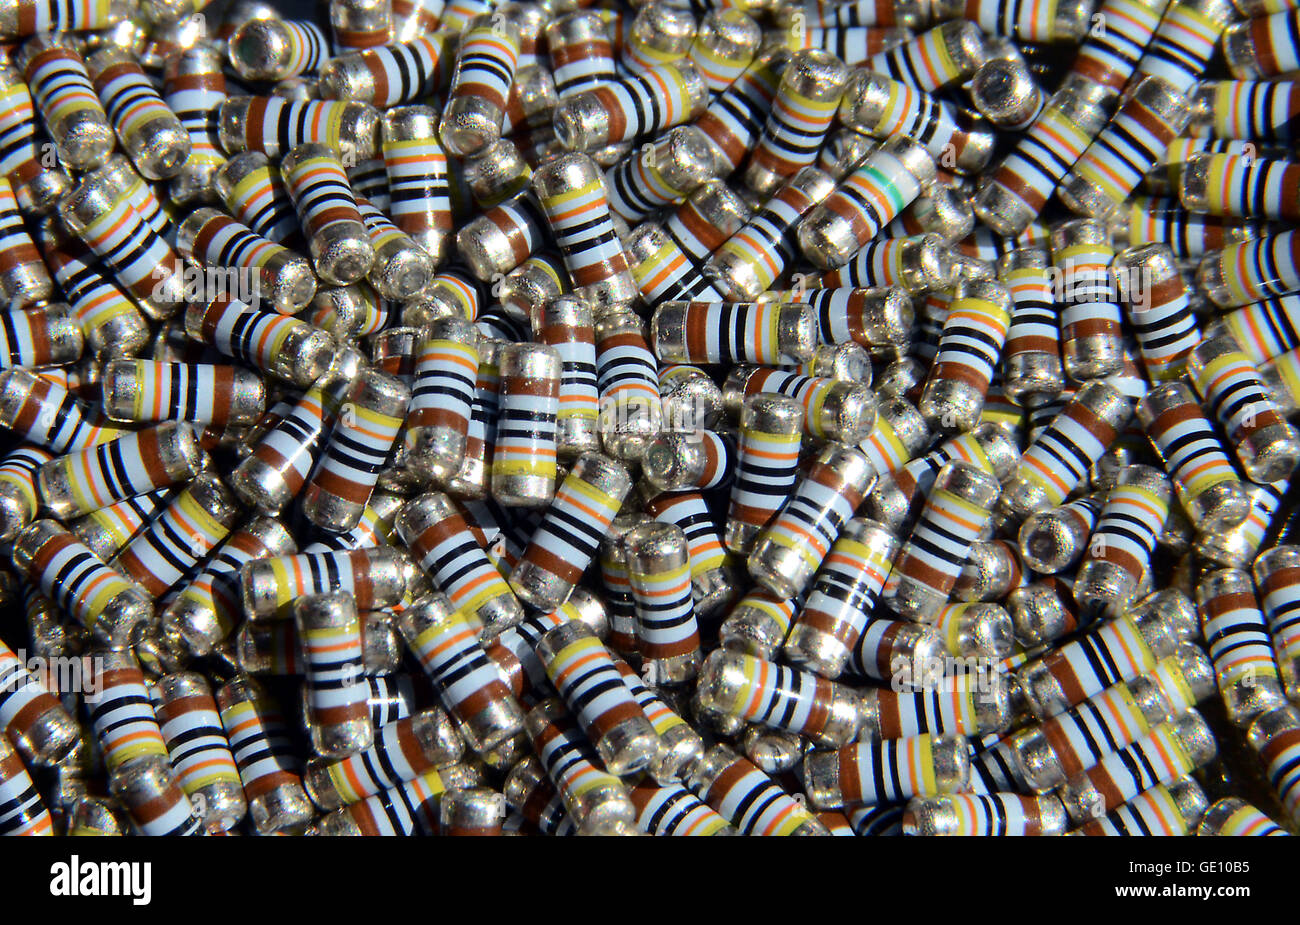 A large number of identical new unused SMD resistors. Or wait, are they all identical? Find the deviant! - Stock Image